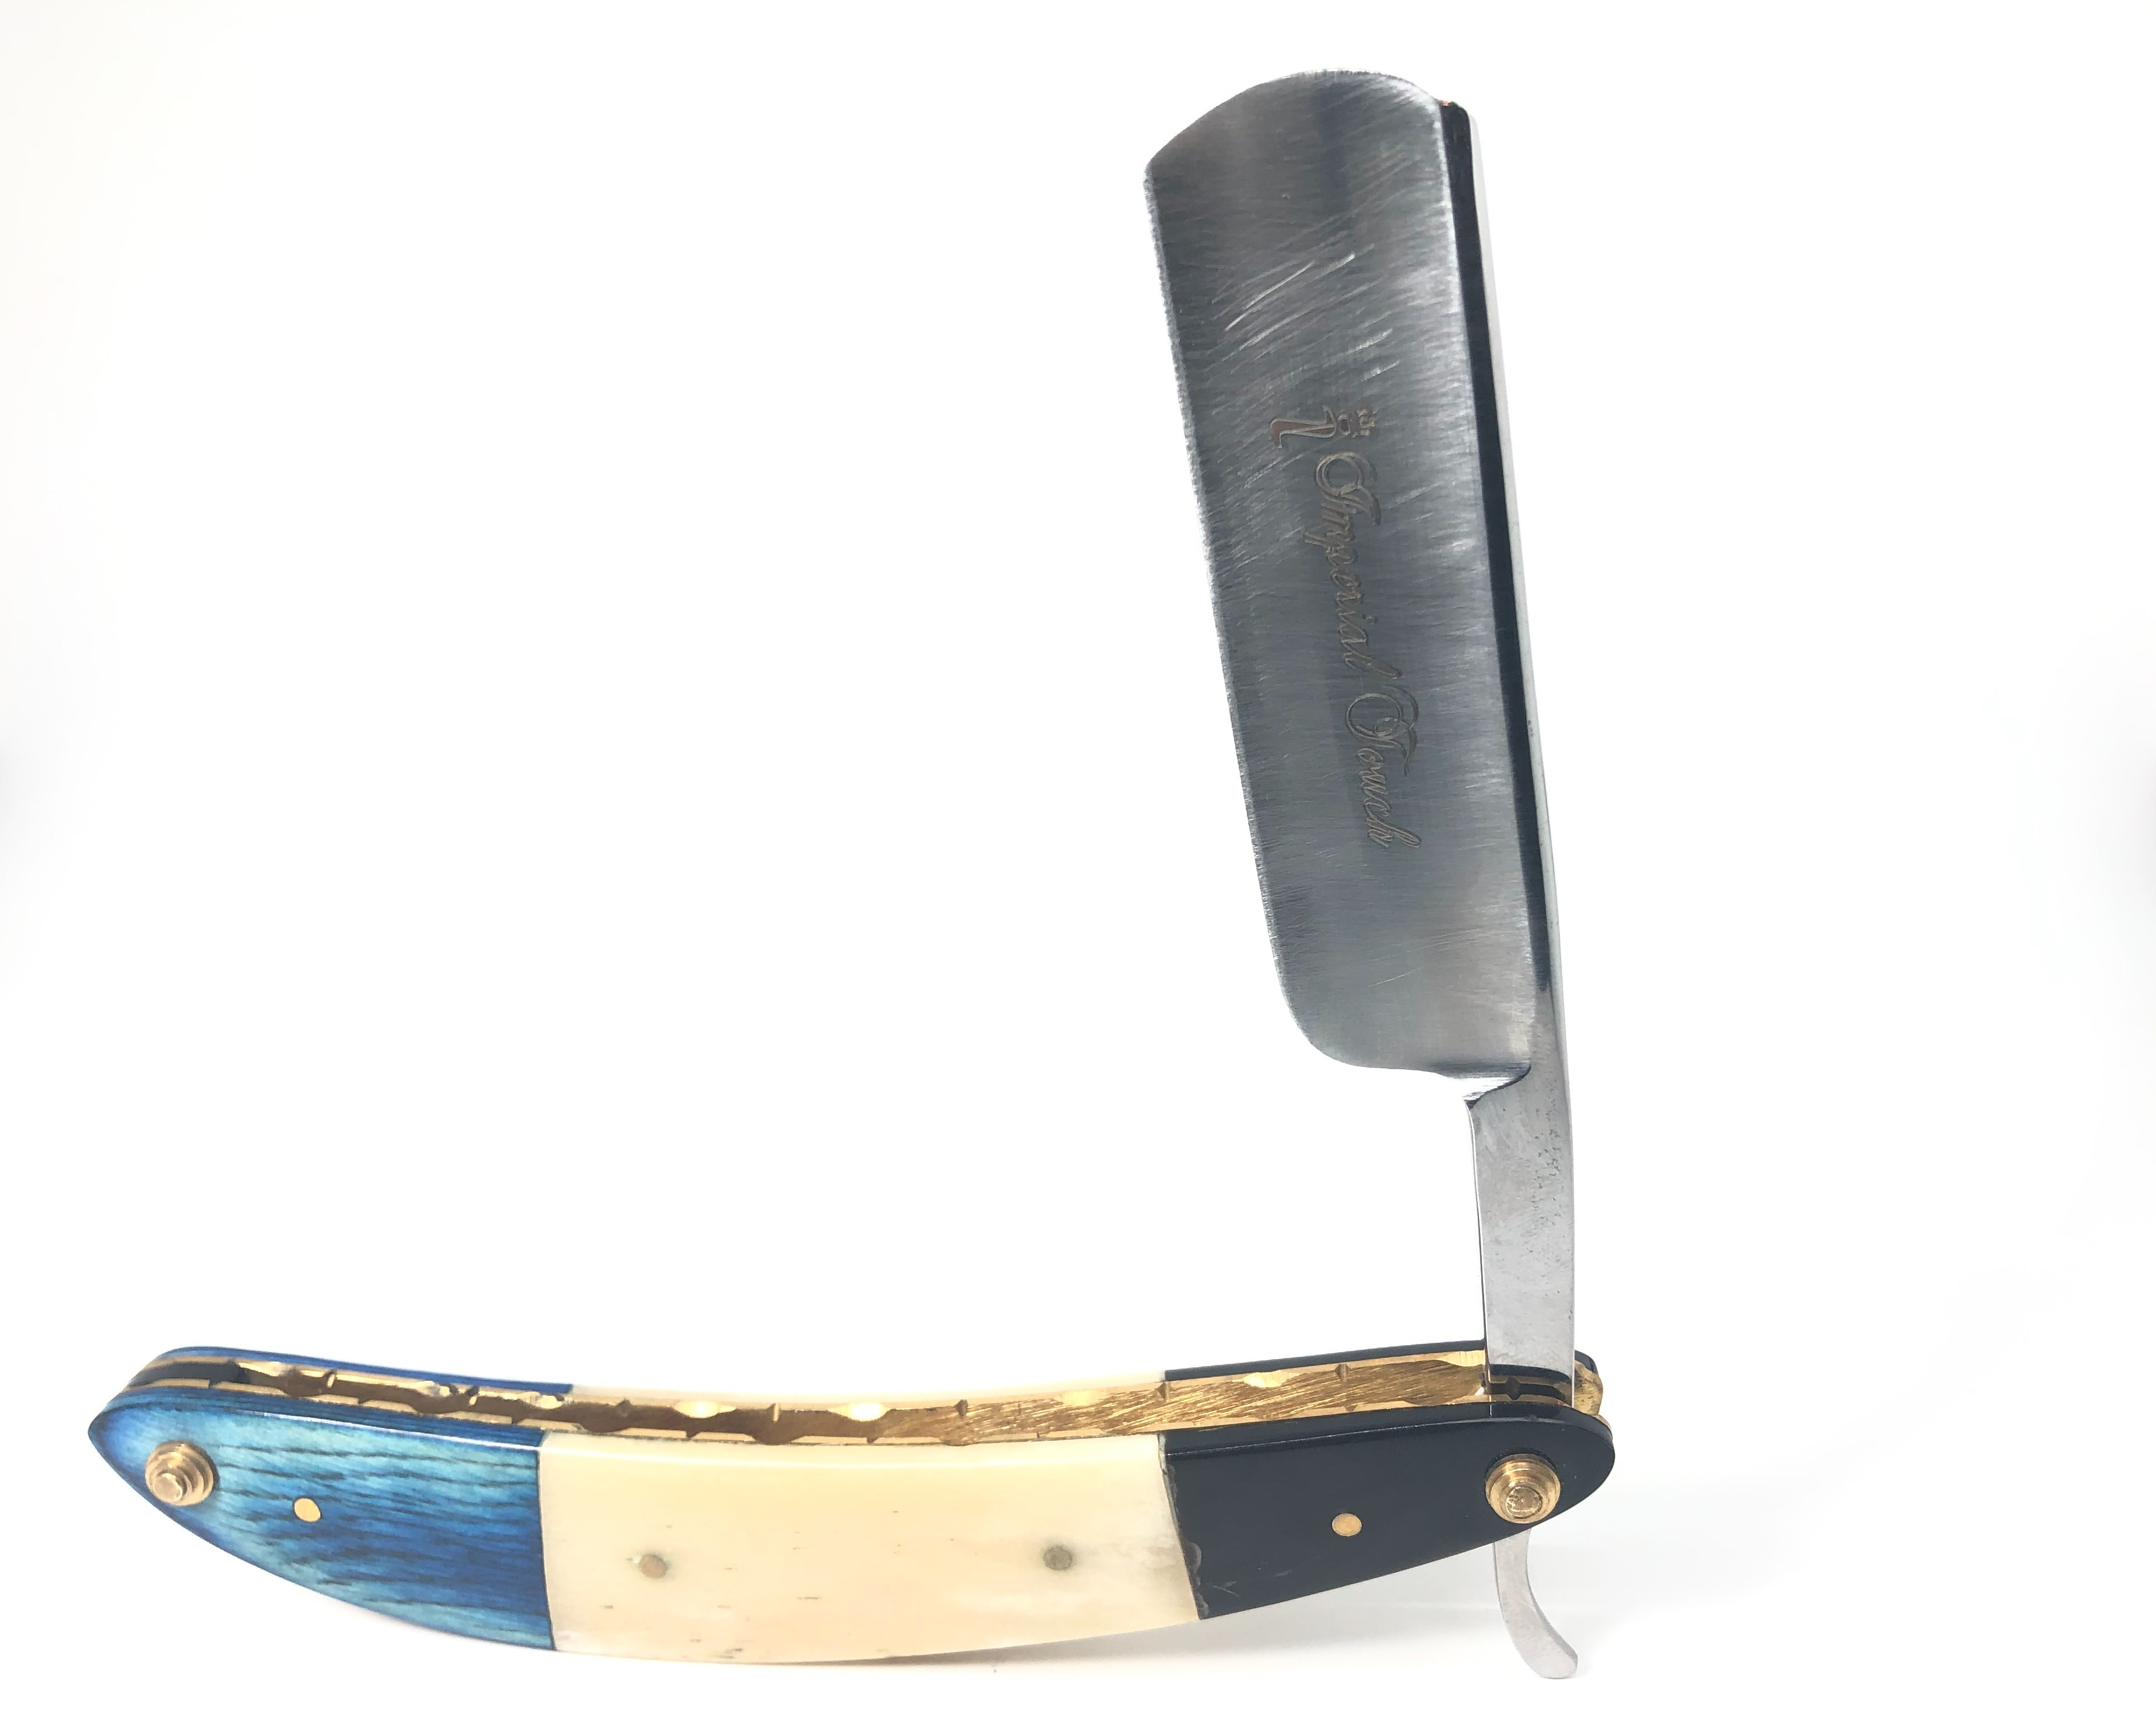 Use a straight razor for the closest shave